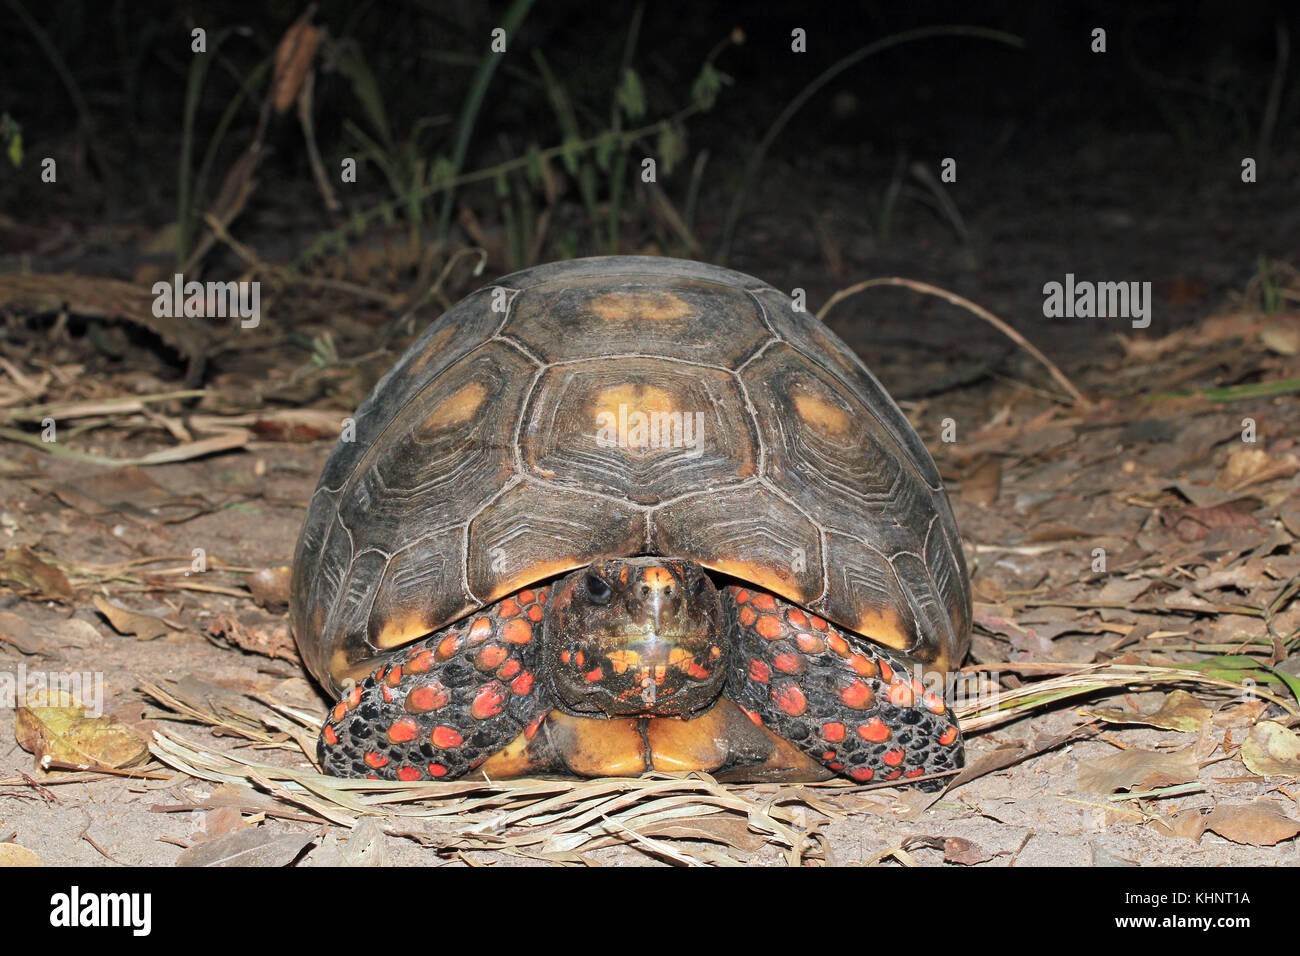 Red-footed Tortoise, Close-up from Front. Rio Claro, Pantanal, Brazil - Stock Image